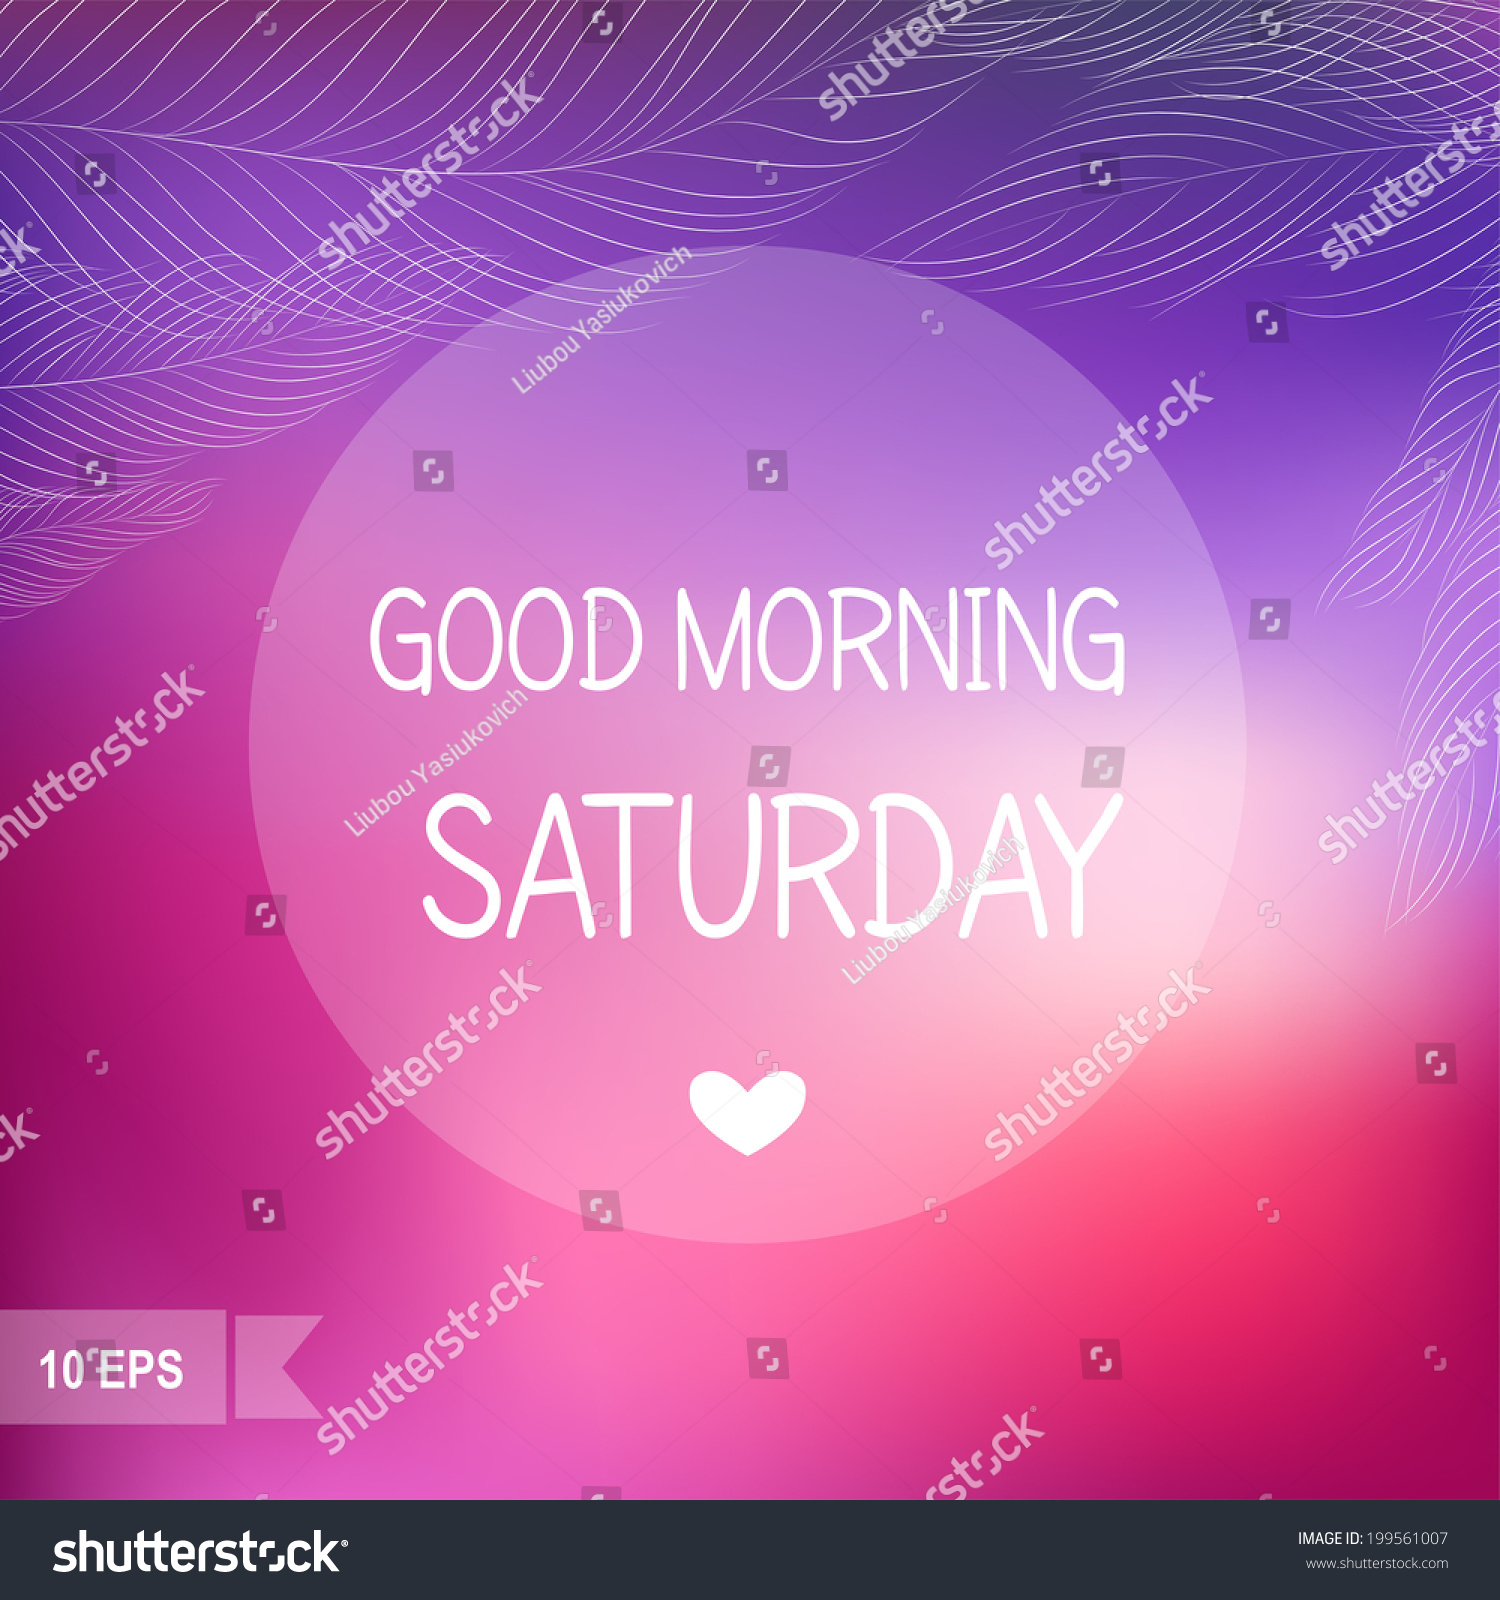 Days Week Good Morning Saturday On Stock Vector Royalty Free